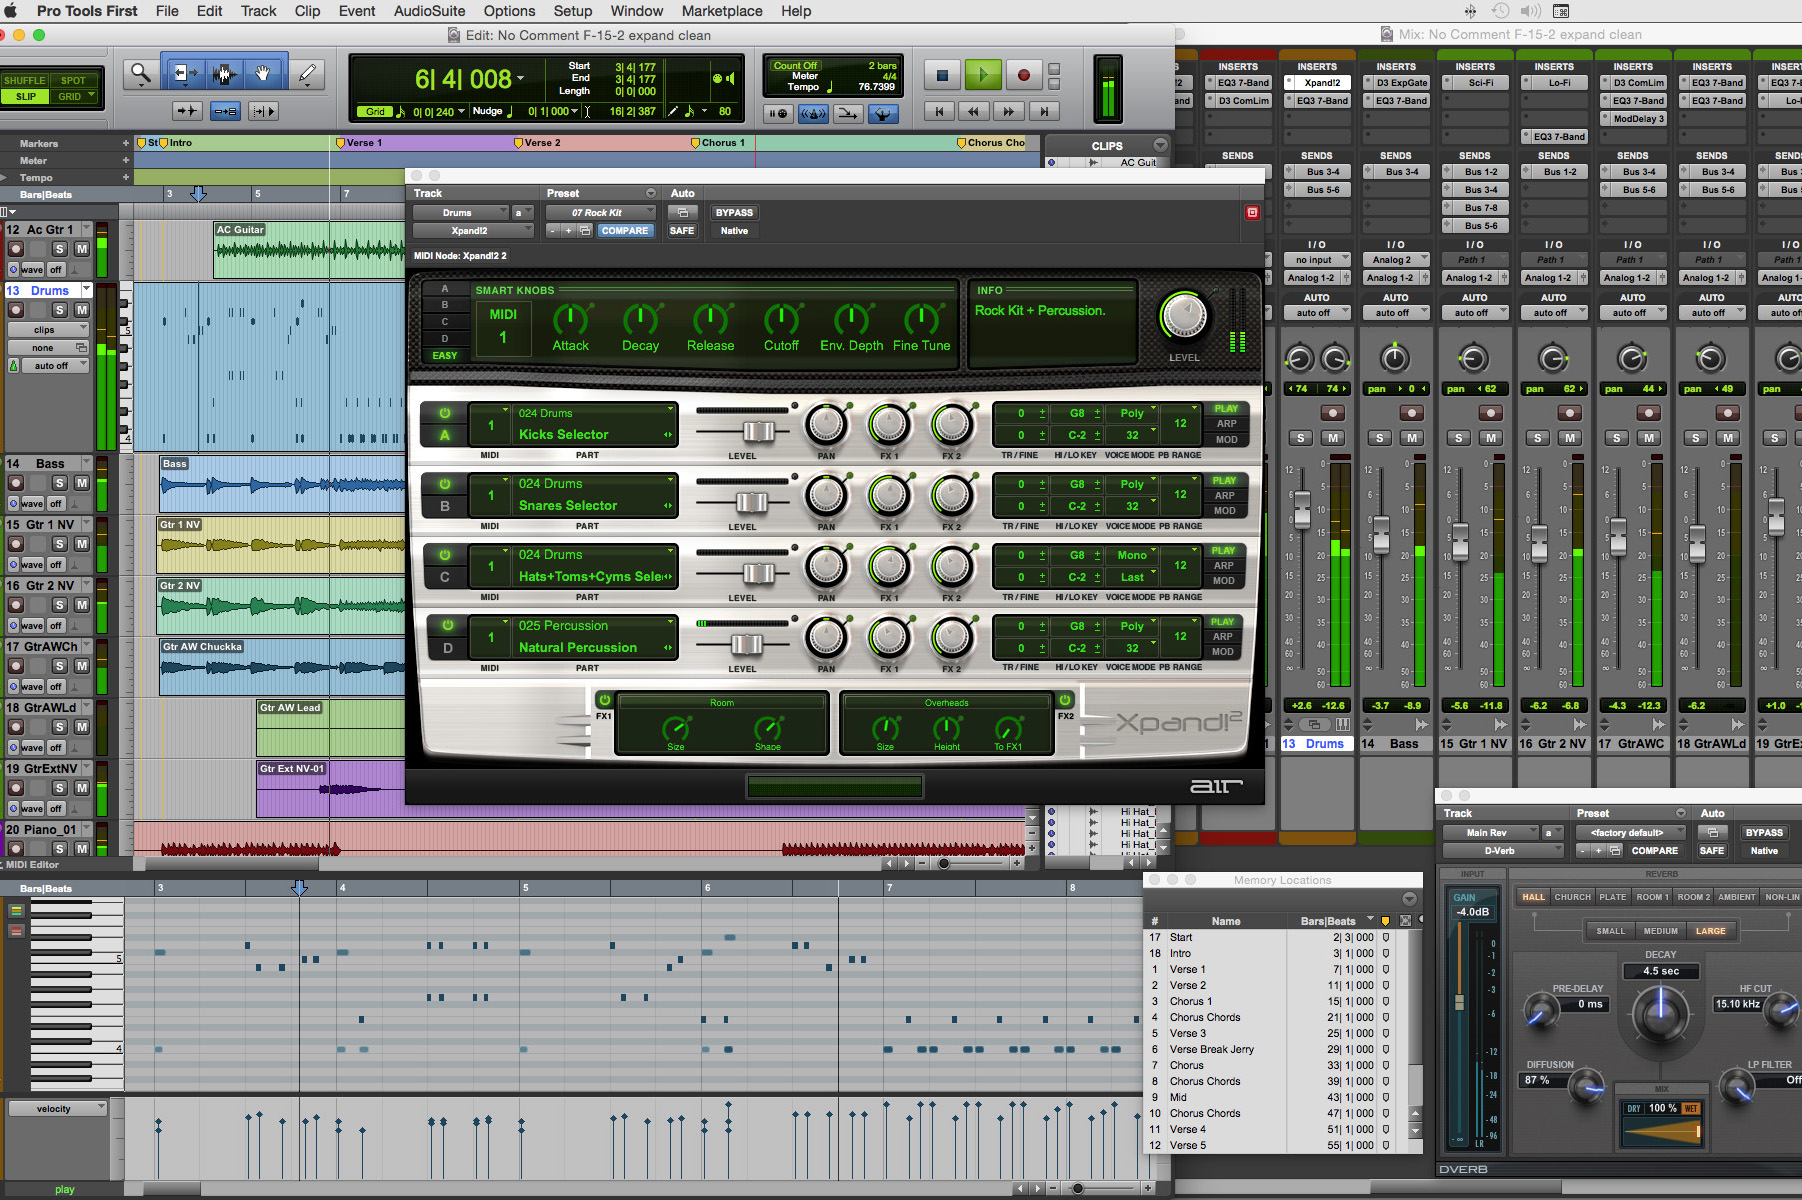 Free Pro Tools offers entry to music market